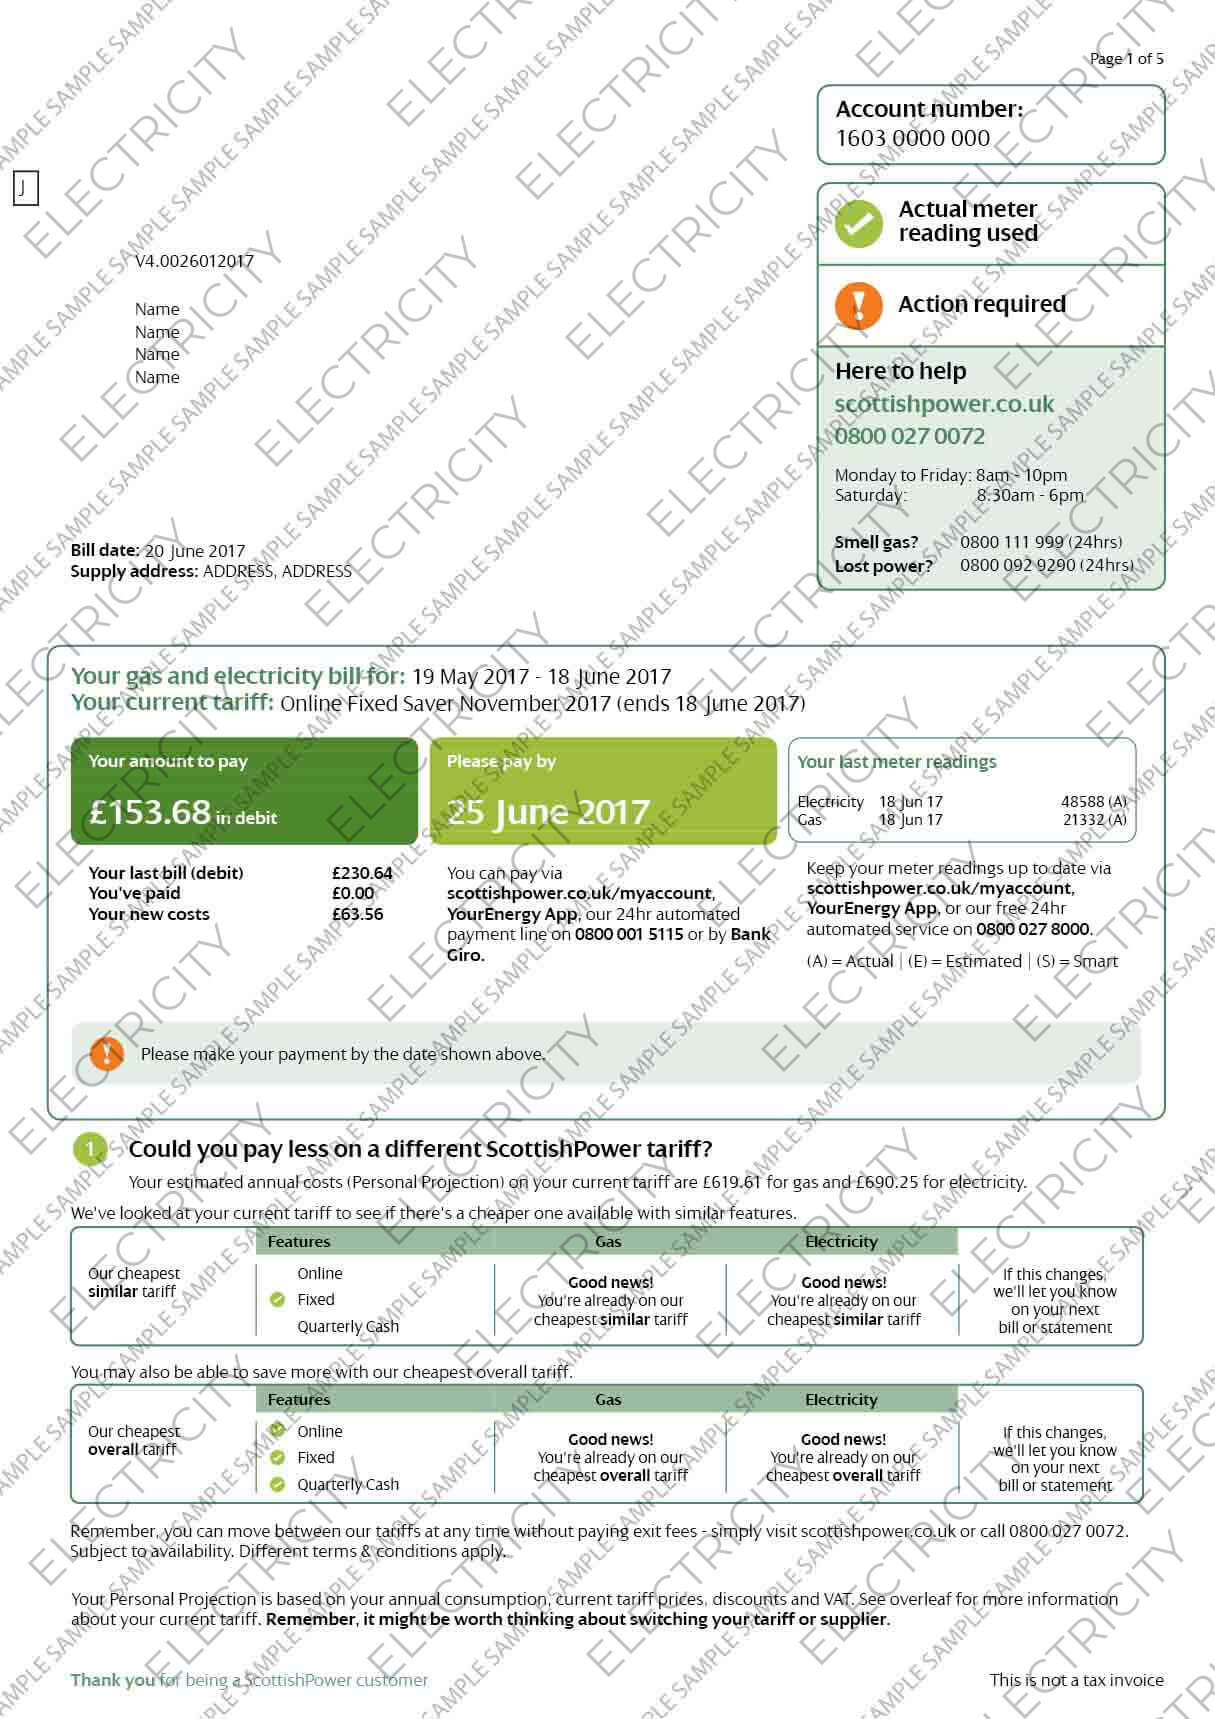 Scottish Power Electricity Utility Bill